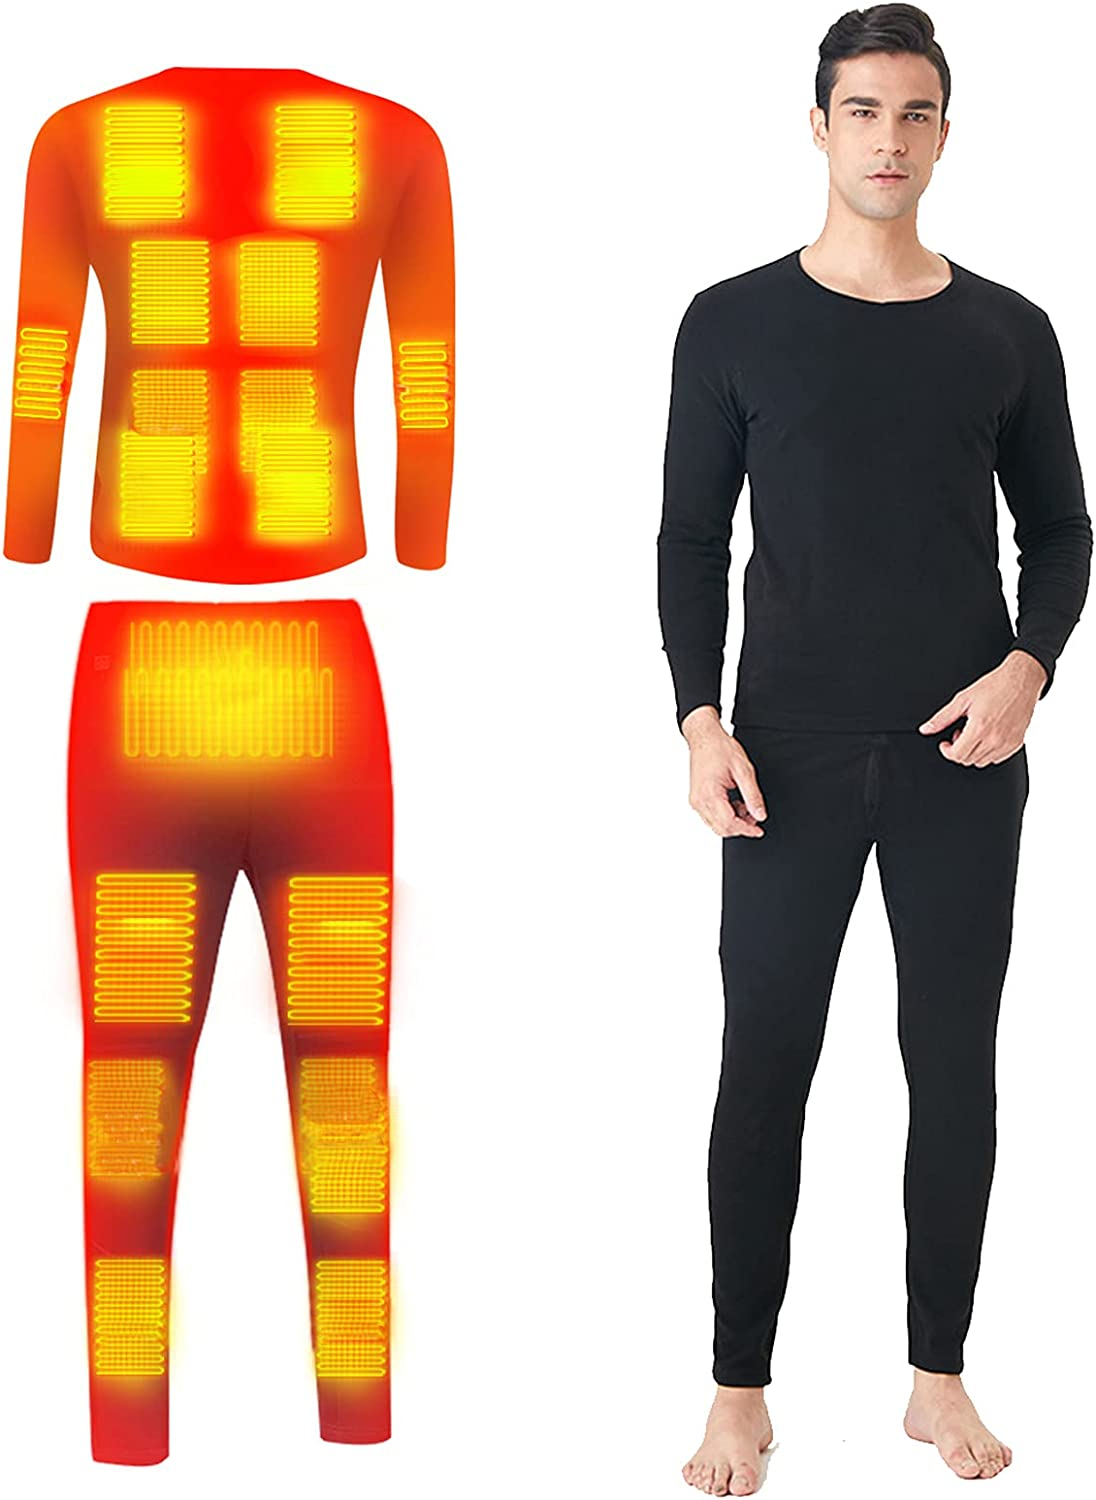 Heating Underwear Set 20-Zones Heated Smart Control Temperature USB Electric Thermal Tops Pants for Winter Daily Life